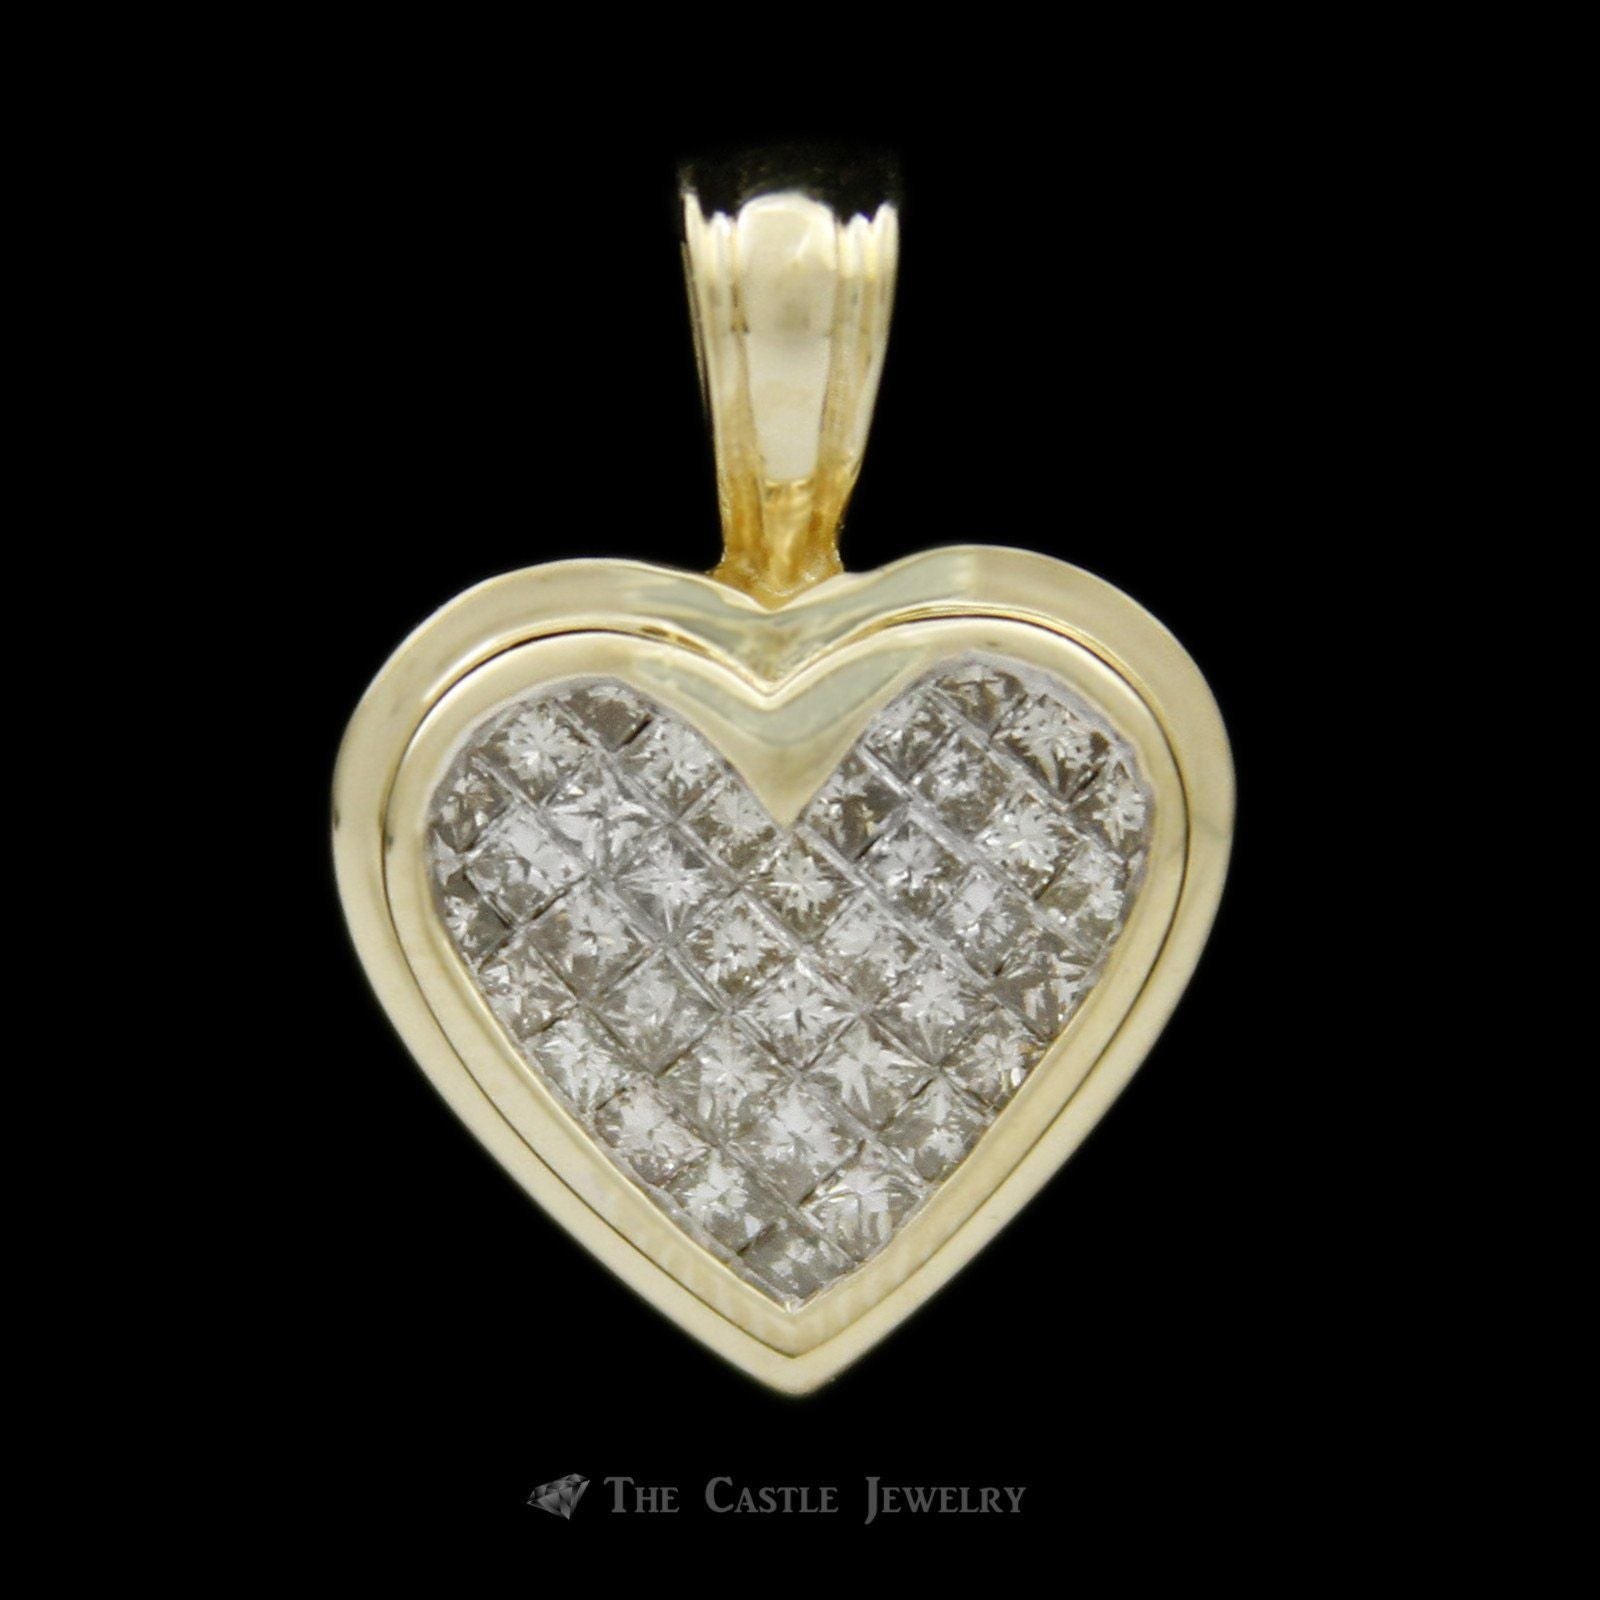 1cttw Heart Shaped Invisible Set Princess Cut Diamond Pendant Crafted